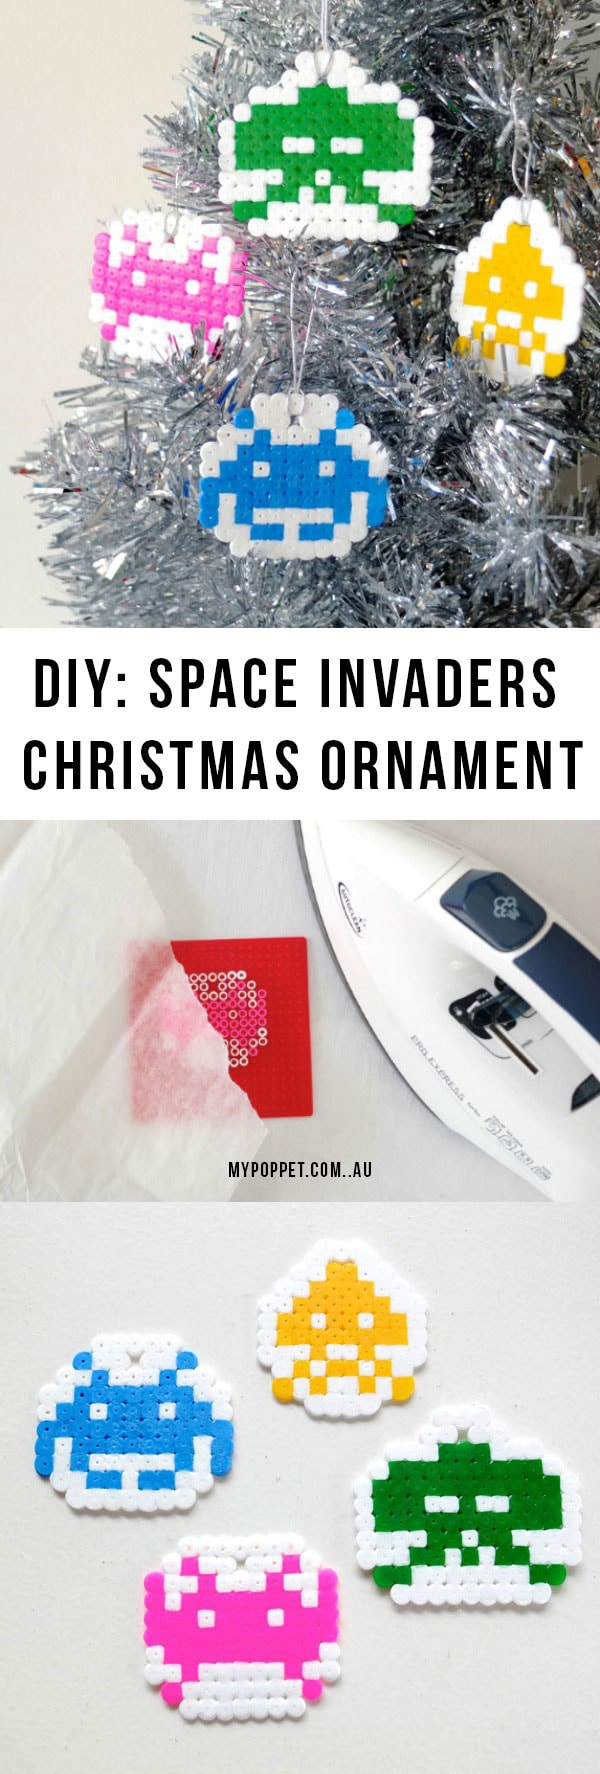 Fun Space Invaders Christmas Ornament - Geek Craft - mypoppet.com.au